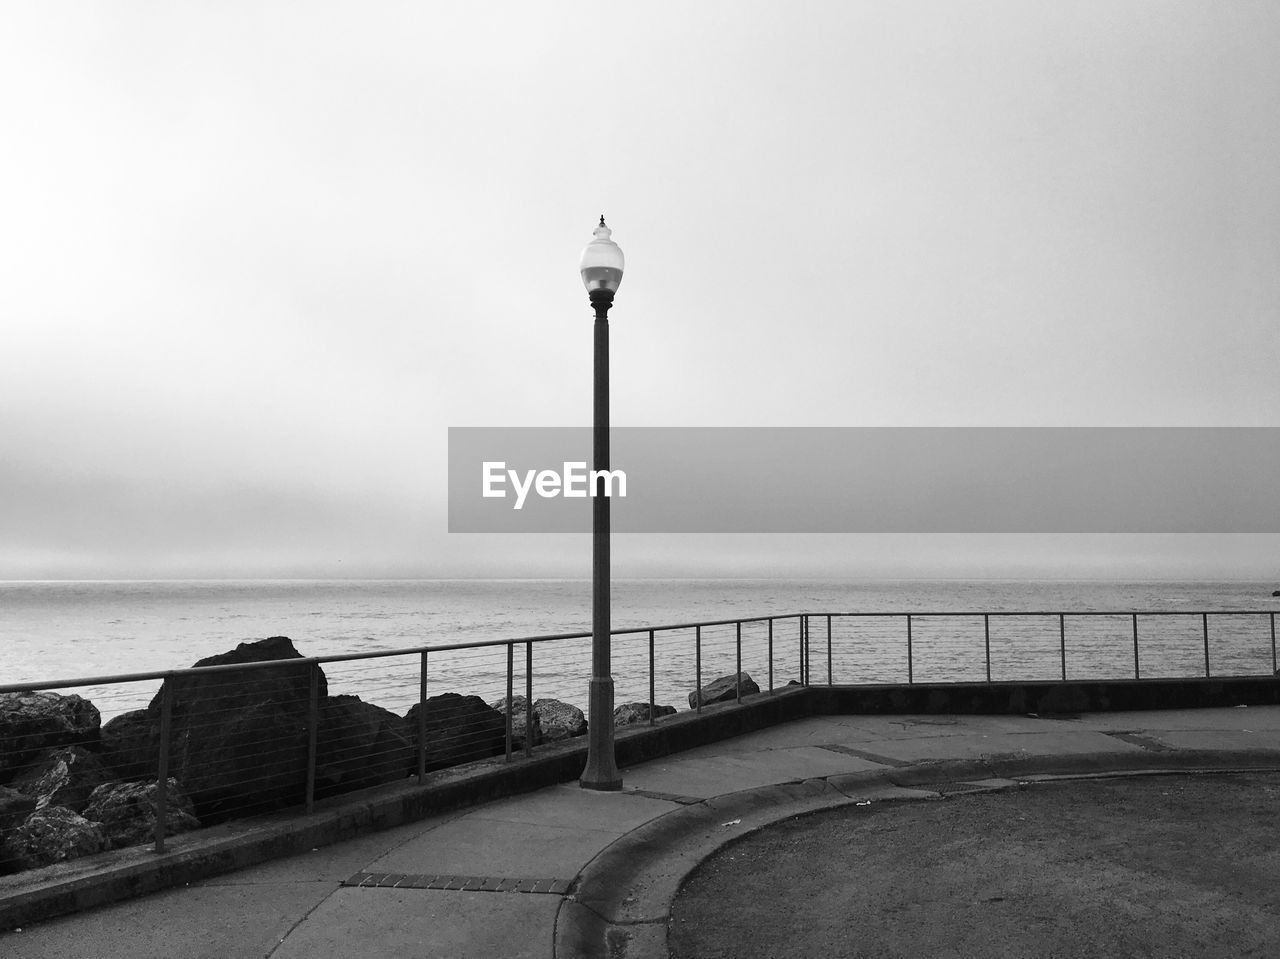 water, sea, railing, tranquil scene, travel destinations, horizon over water, street light, tranquility, scenics, built structure, day, nature, no people, architecture, outdoors, sky, clear sky, beauty in nature